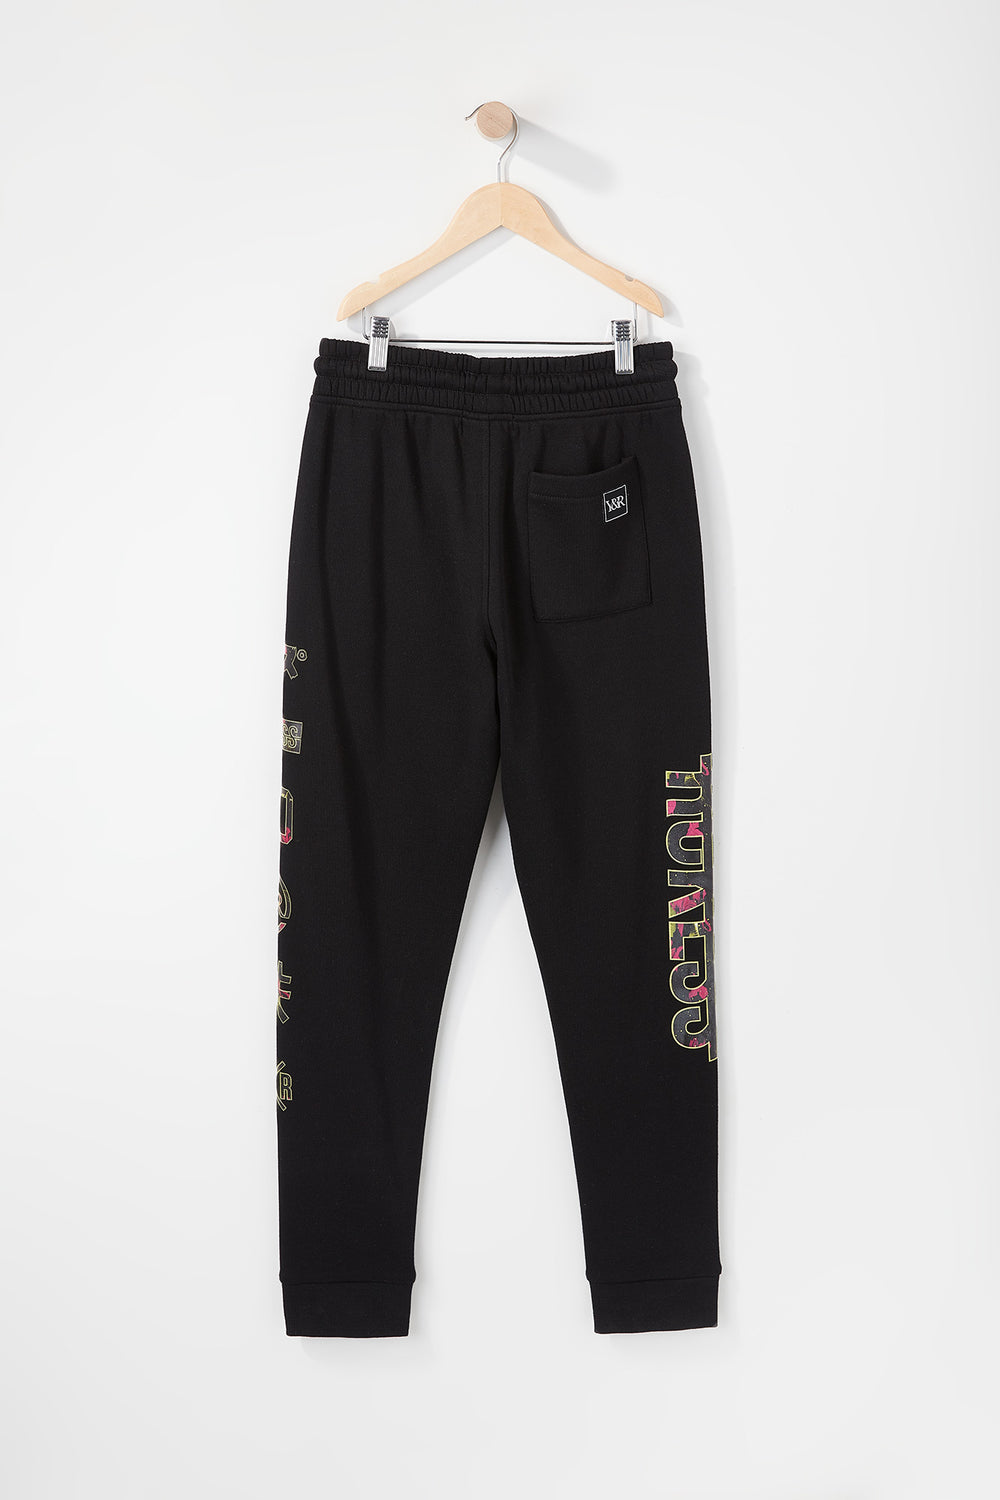 Young & Reckless Boys Neon Floral Jogger Black